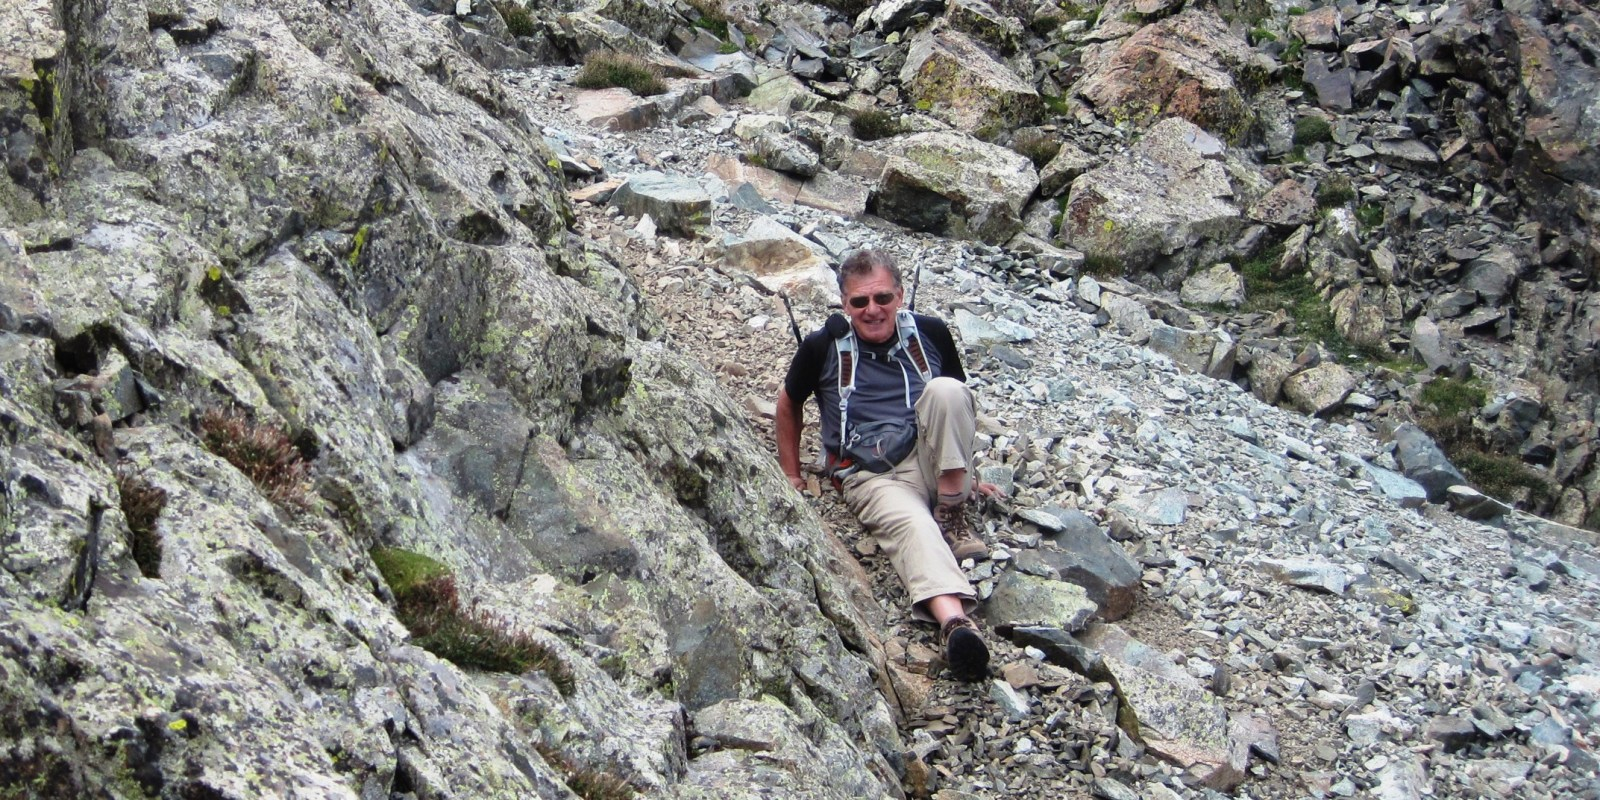 Photograph of Rick Crandall slipping on loose rocks